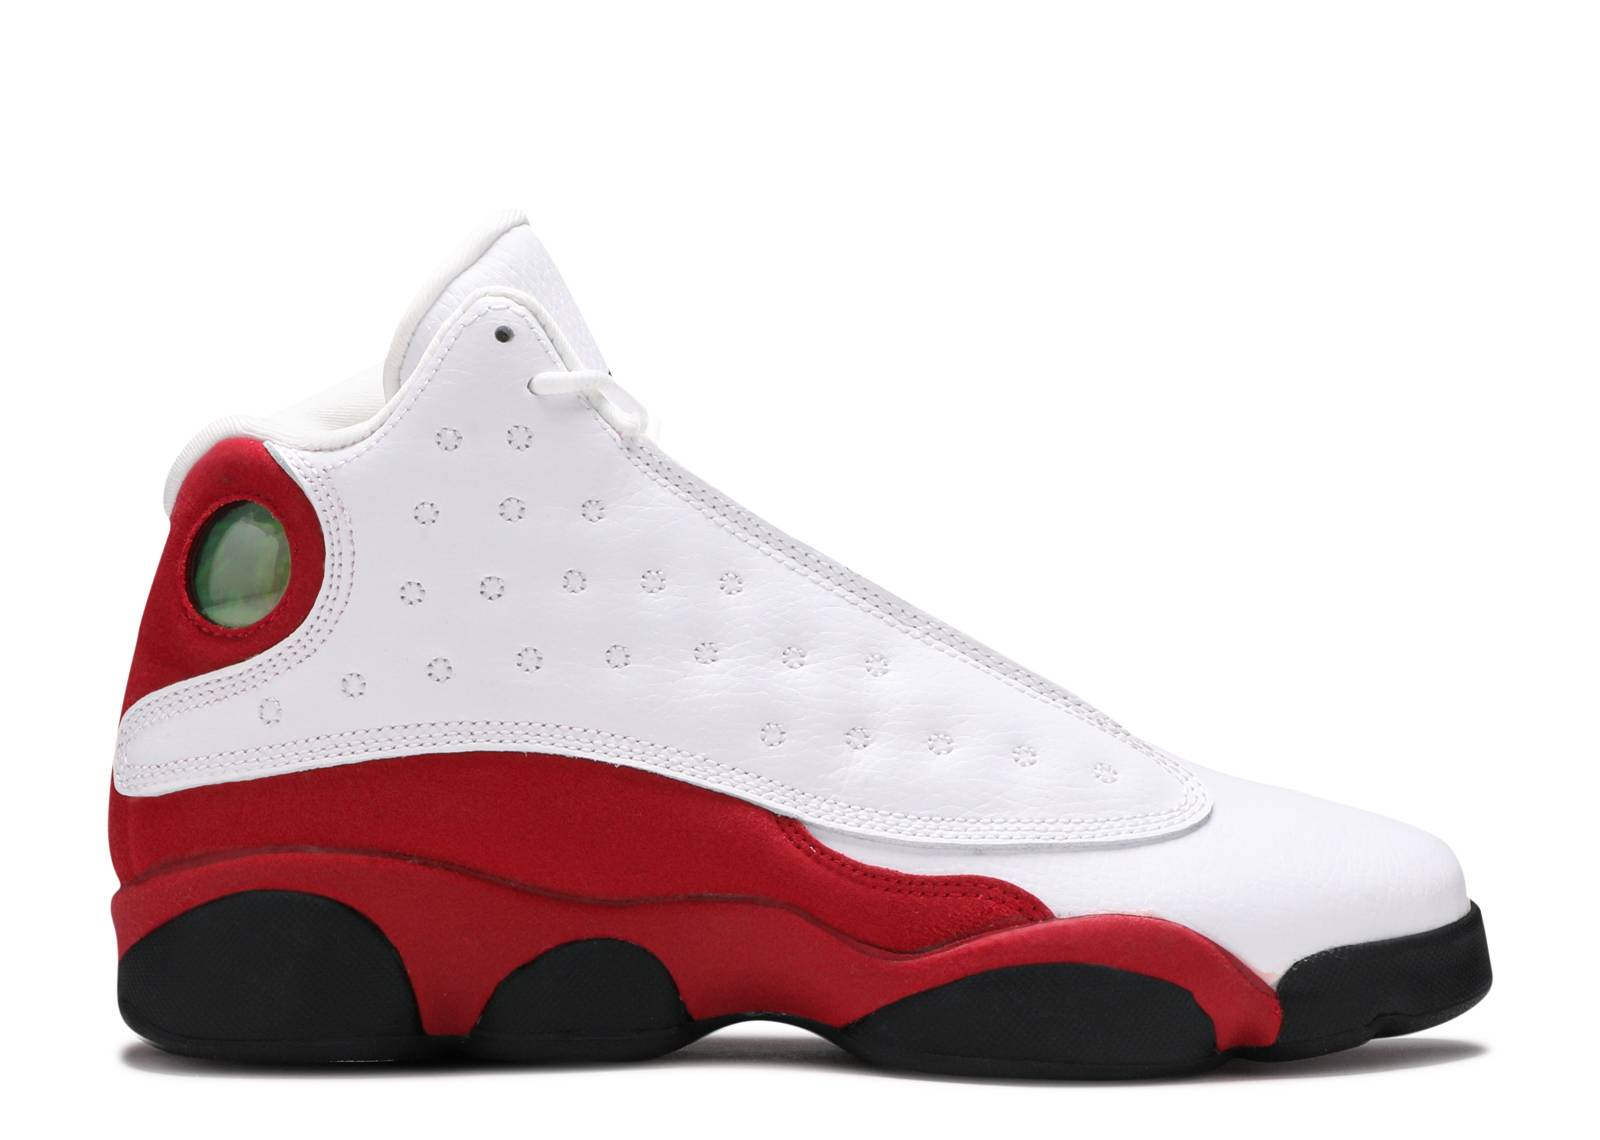 new arrival 222a9 b9981 air jordan 13 retro bg (gs)